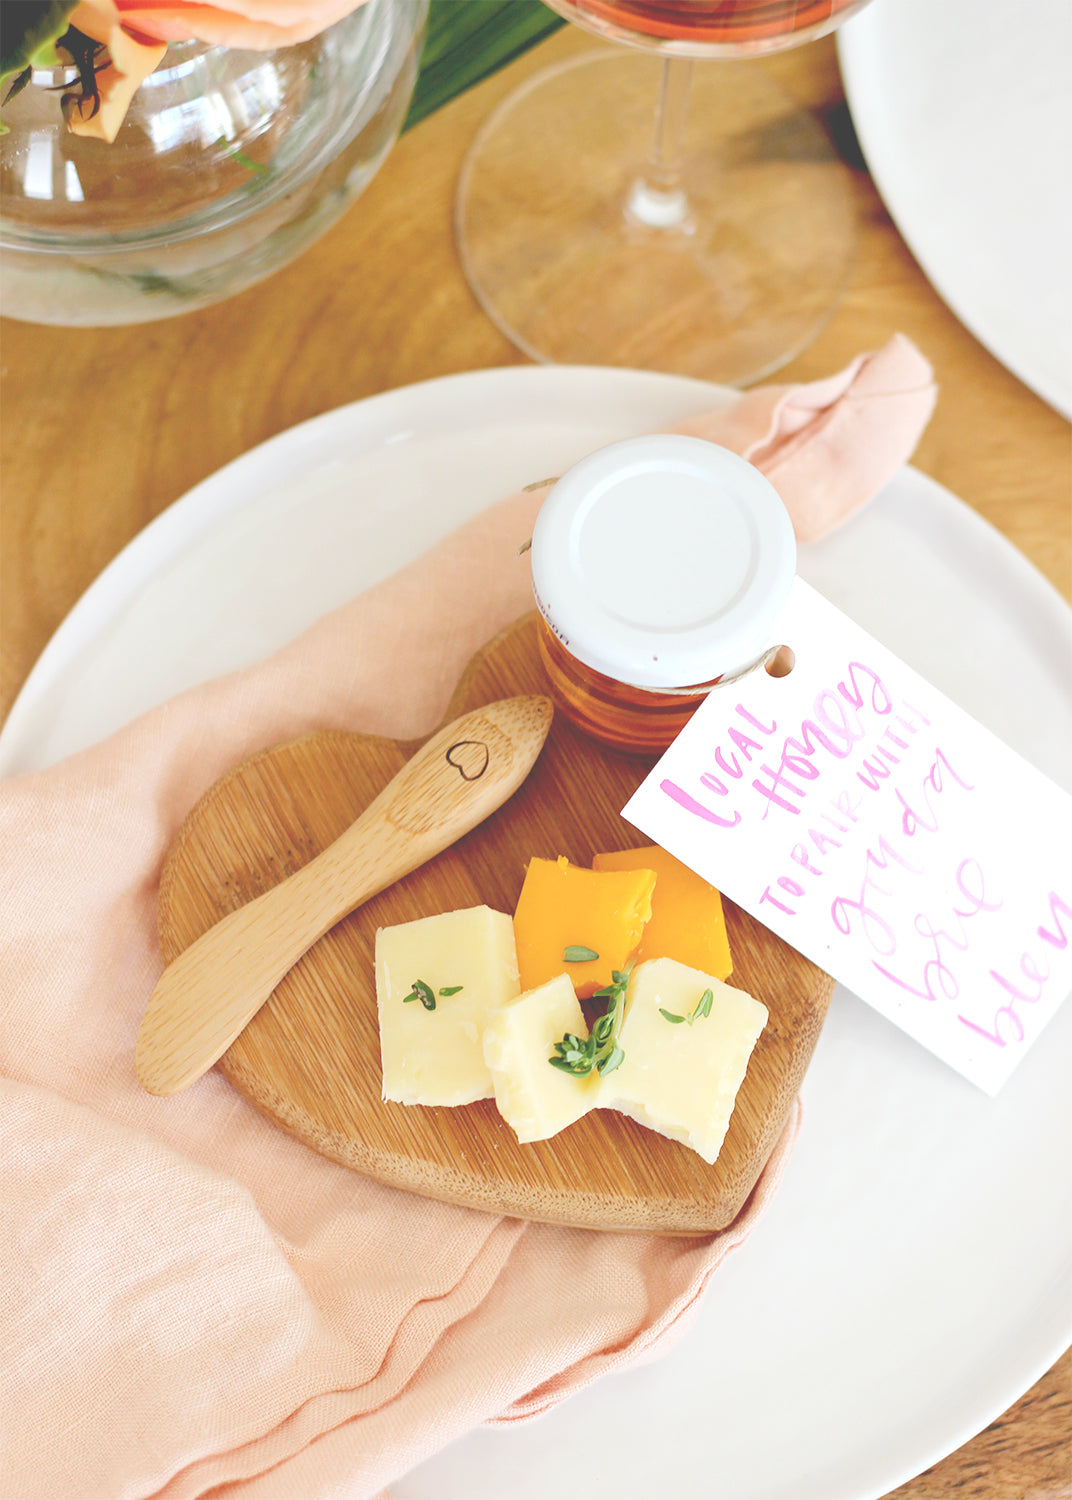 Heart-shaped Cheese Board Wedding Favor with Small Jar of Honey | Kate Aspen | via A Fabulous Fete